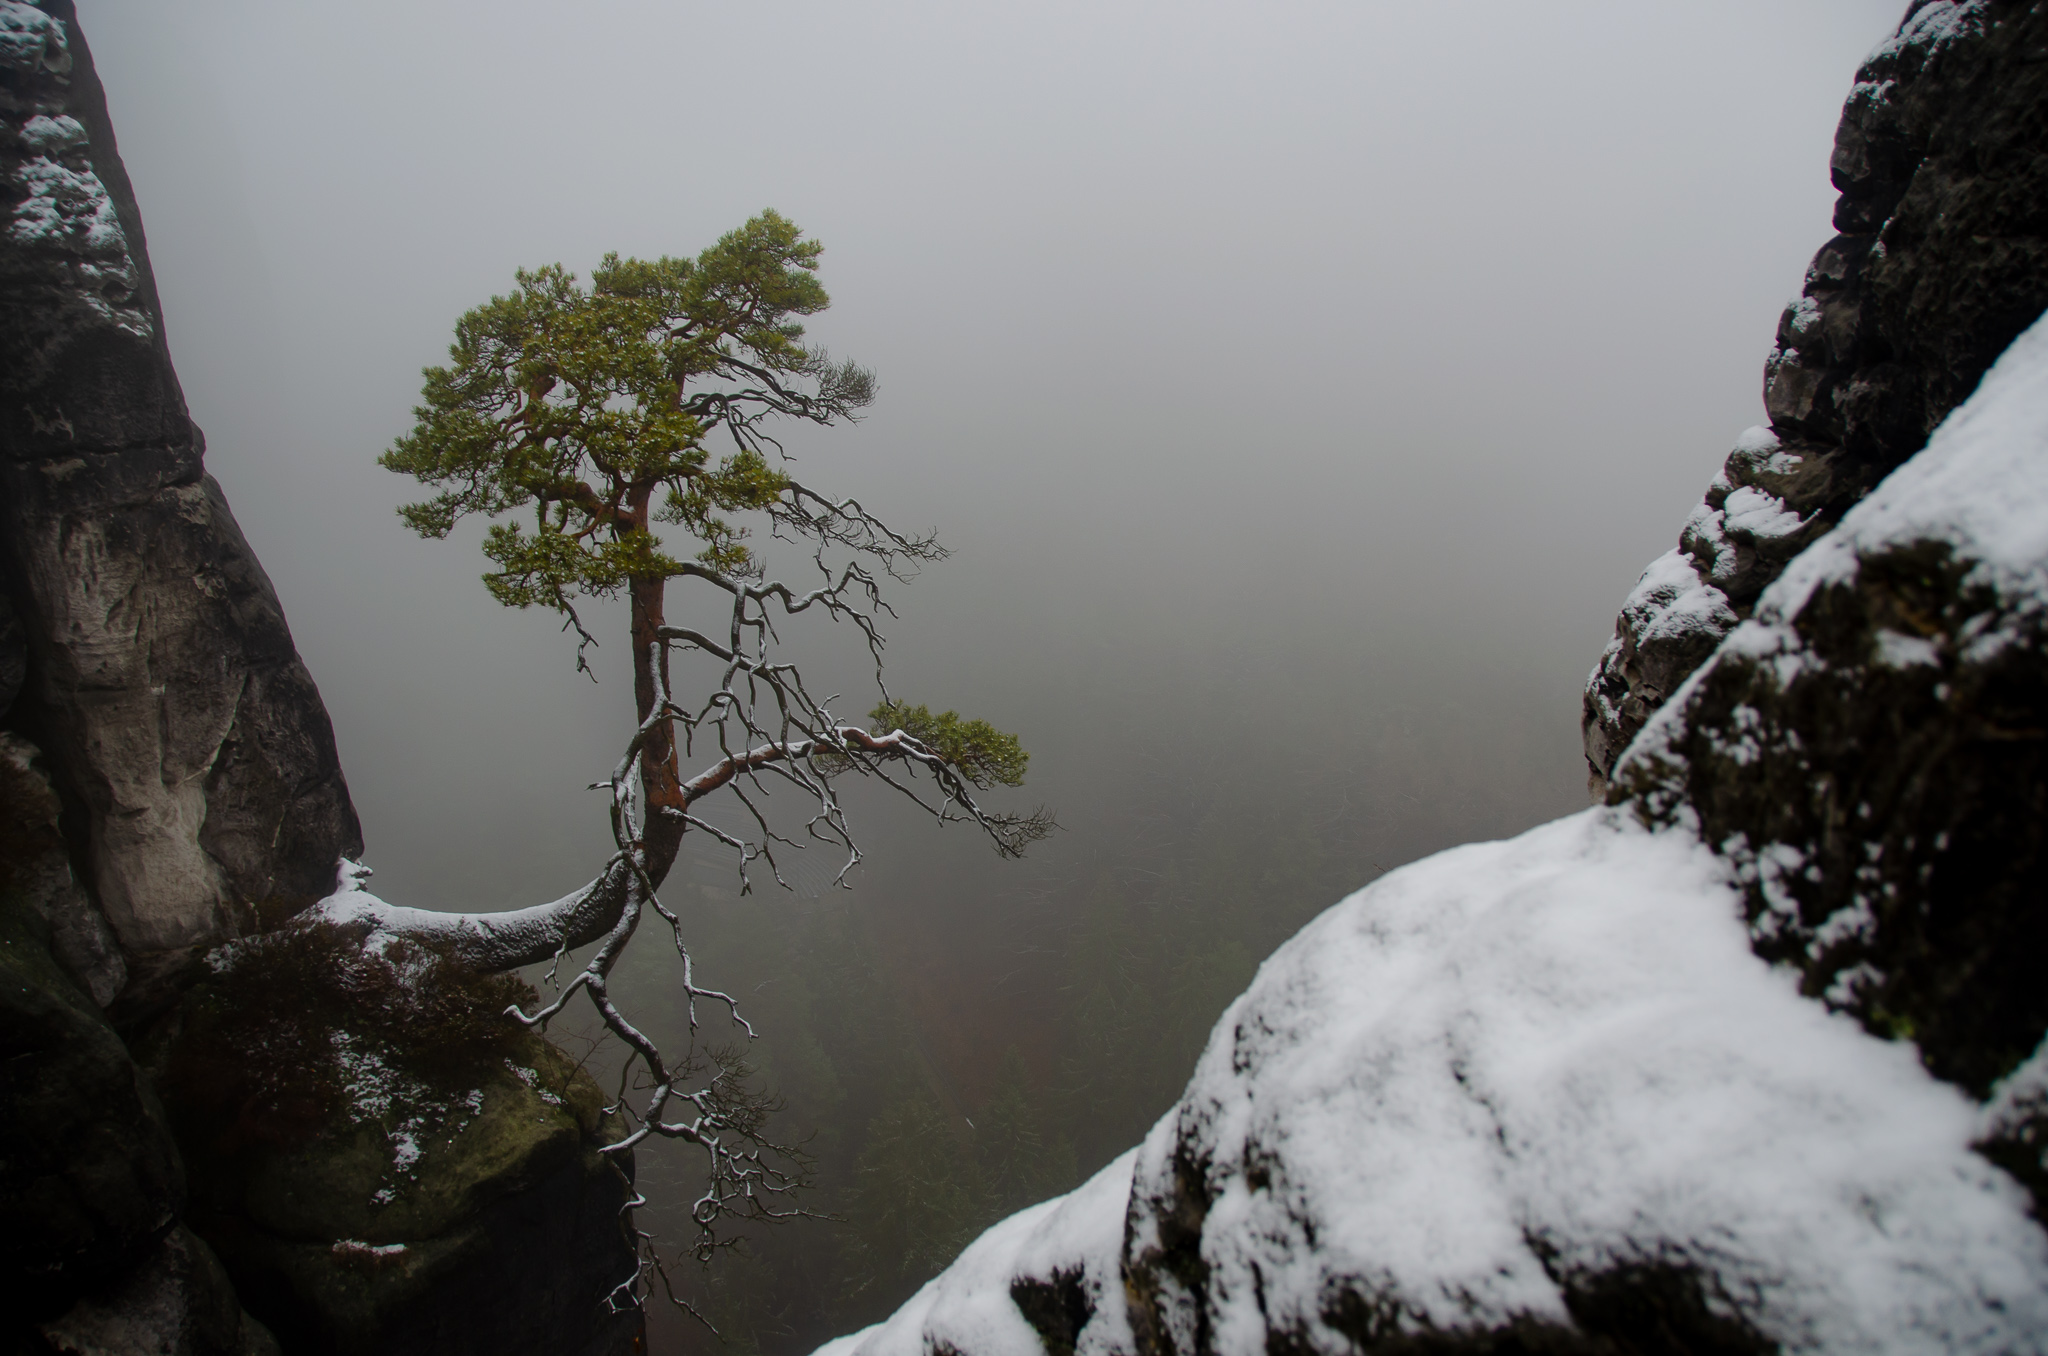 Hiking in the snowy Saxon Switzerland National Park